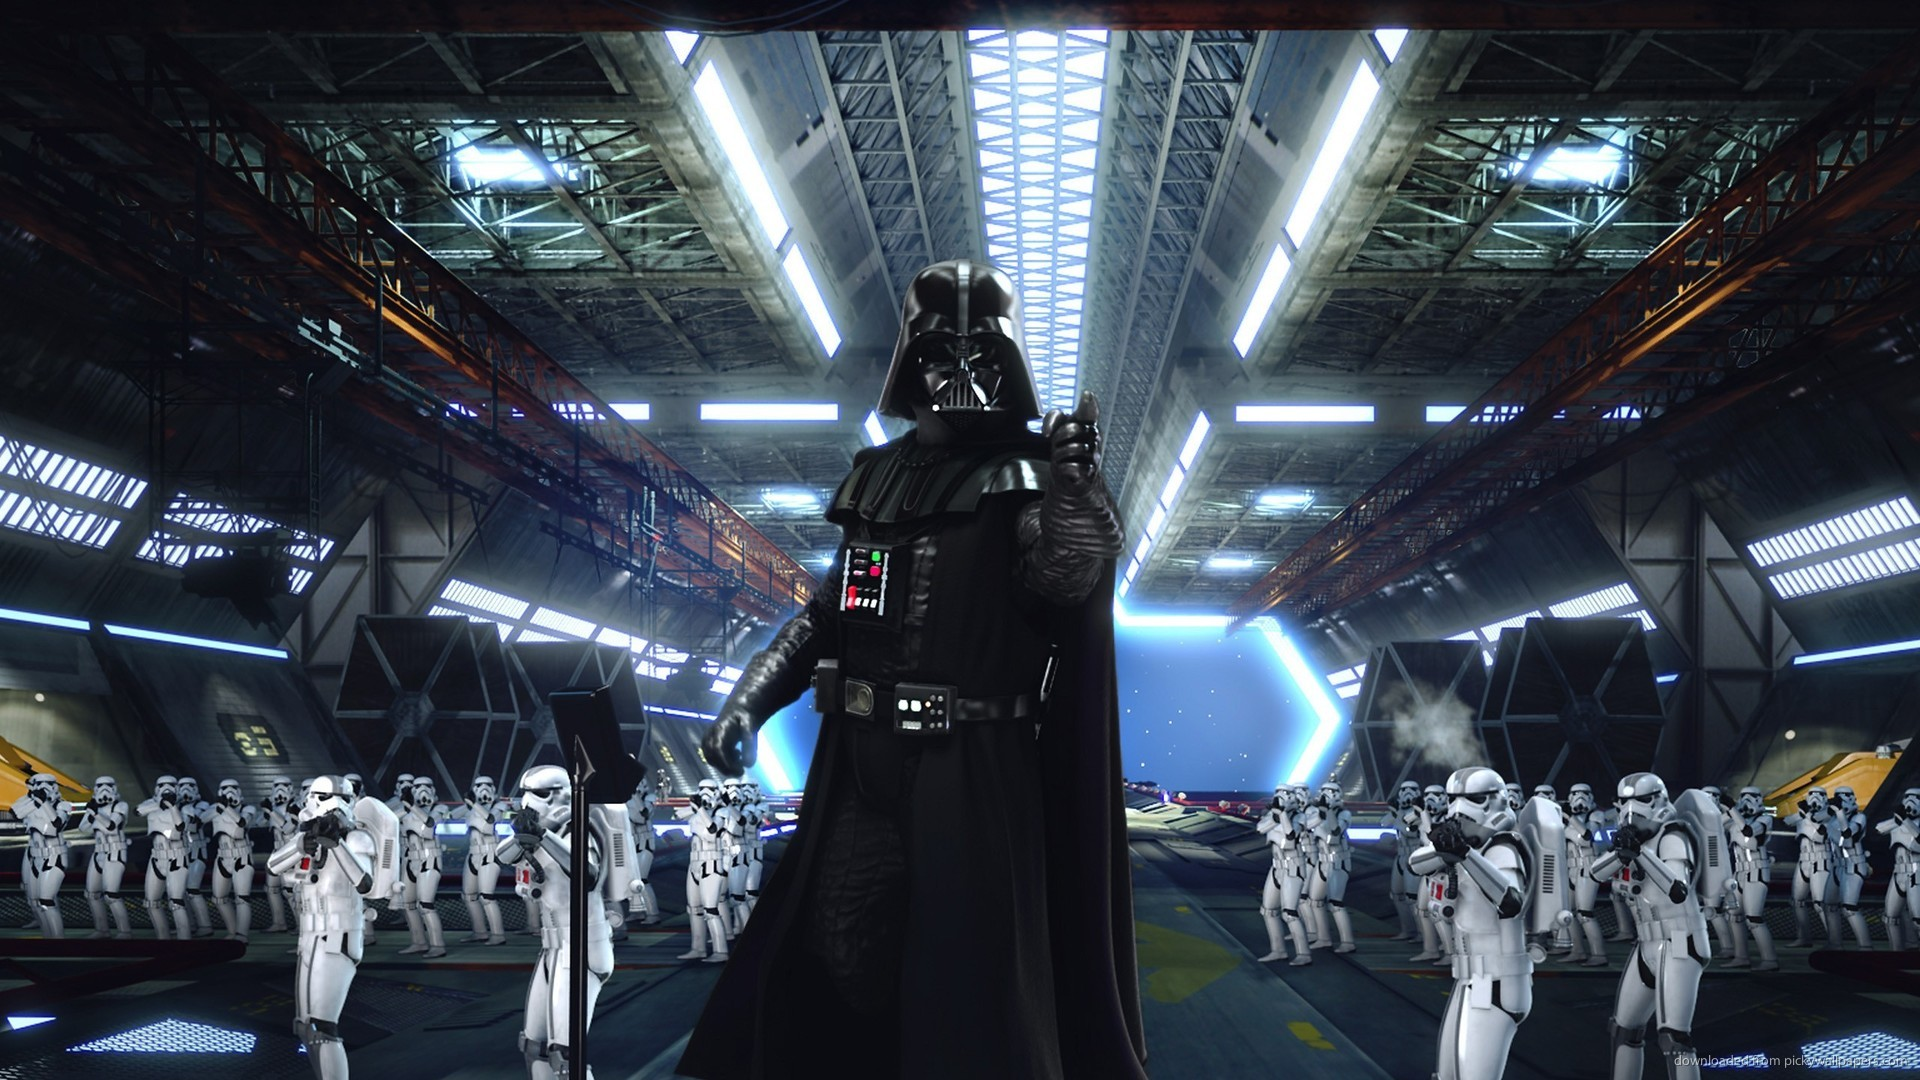 1920x1080 1280x720 Darth Vader And The Army Of Stormtroopers wallpaper